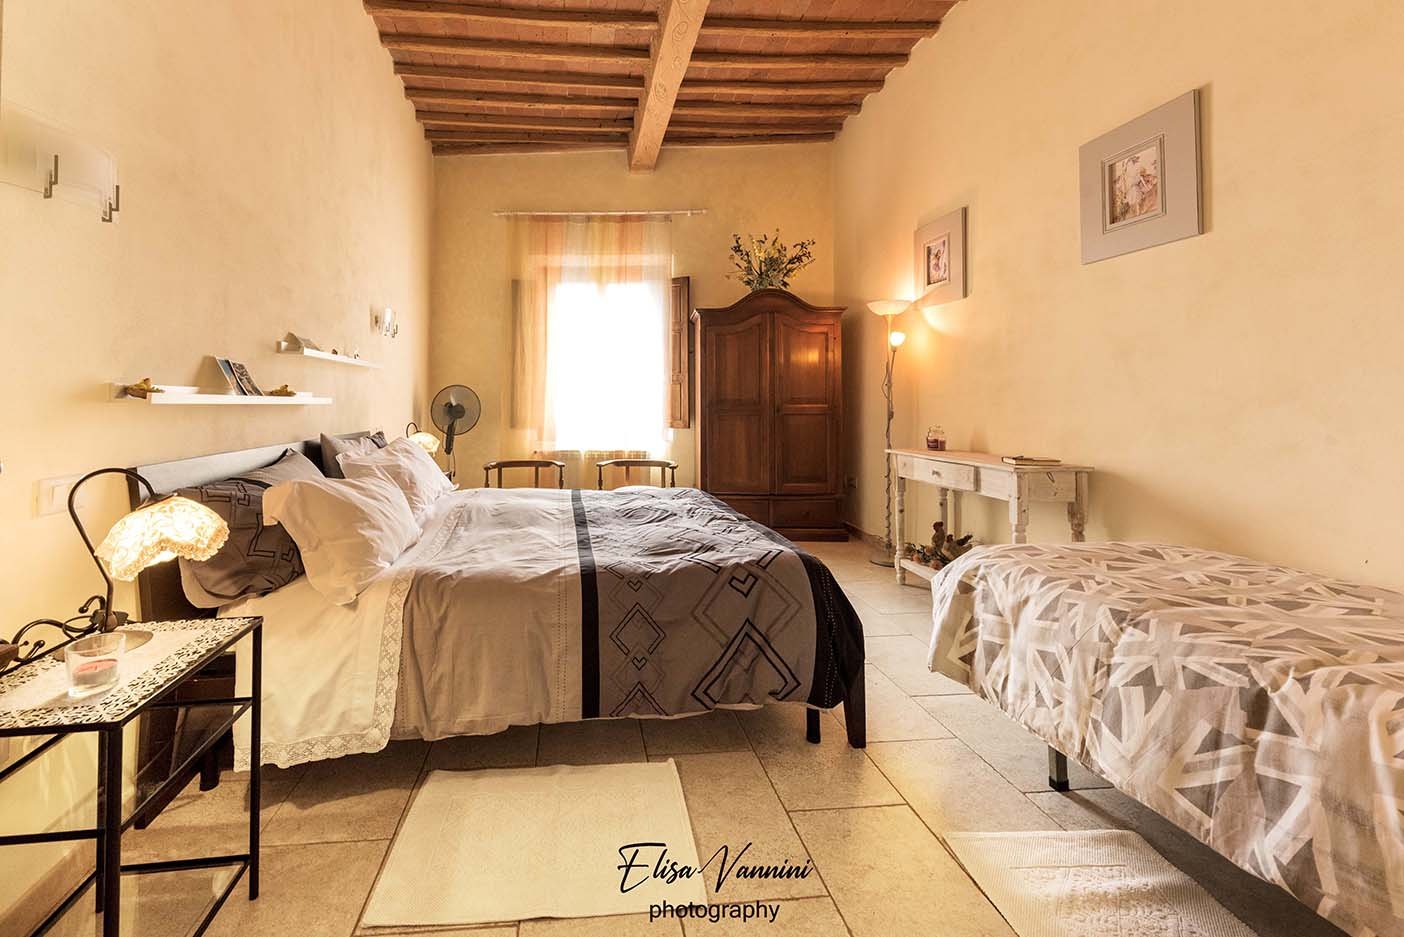 Sunflowers - Apartment in the Tuscan hills - Bedroom